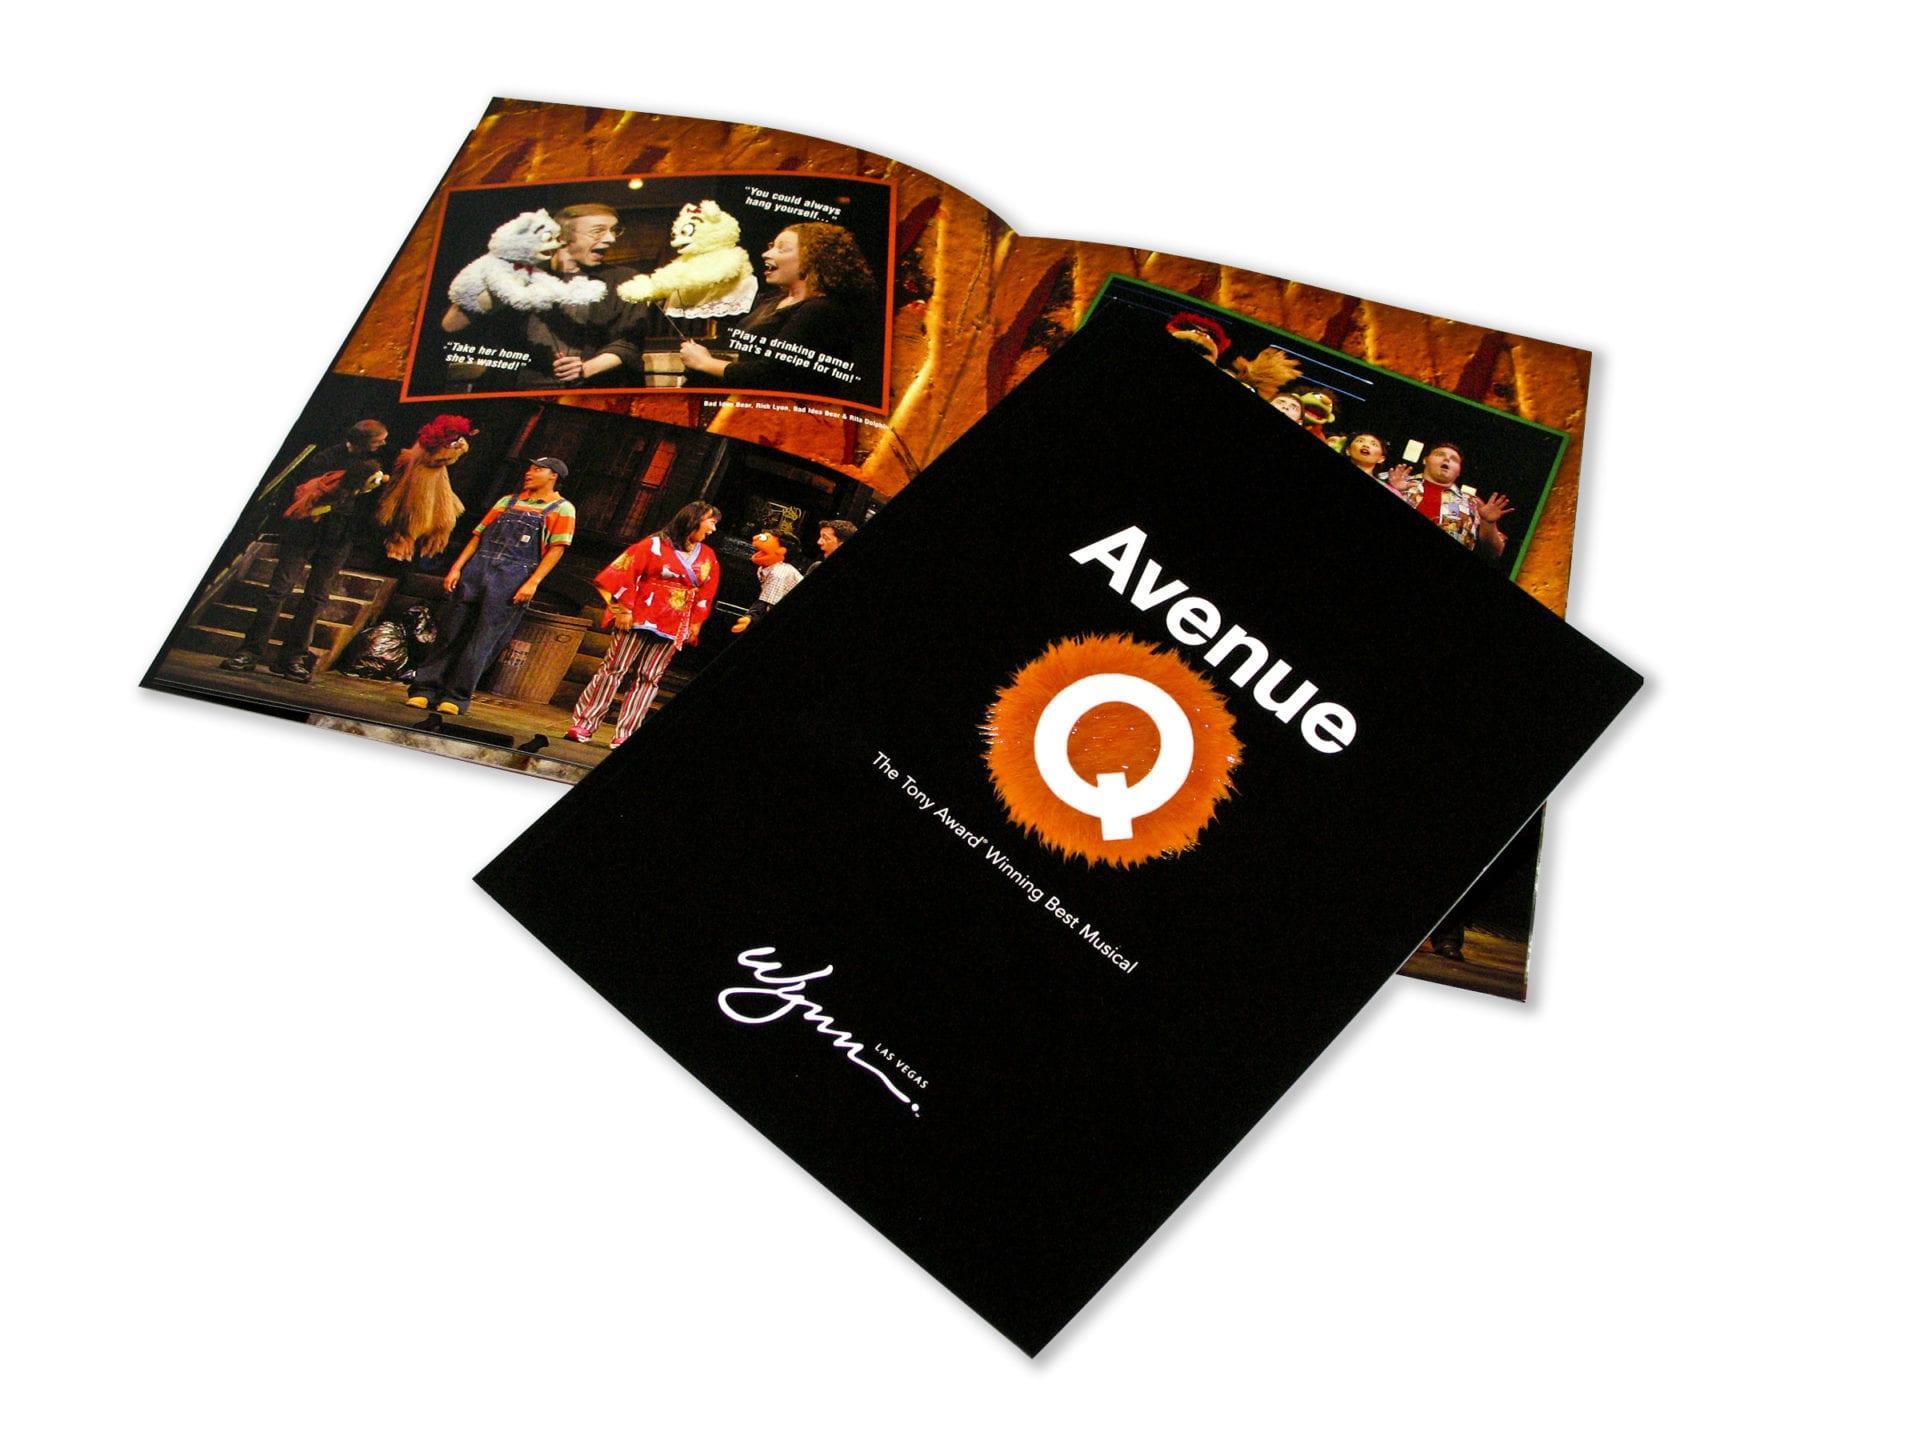 A magazine for Avenue Q musical at the Wynn Las Vegas, designed by Canyon Creative